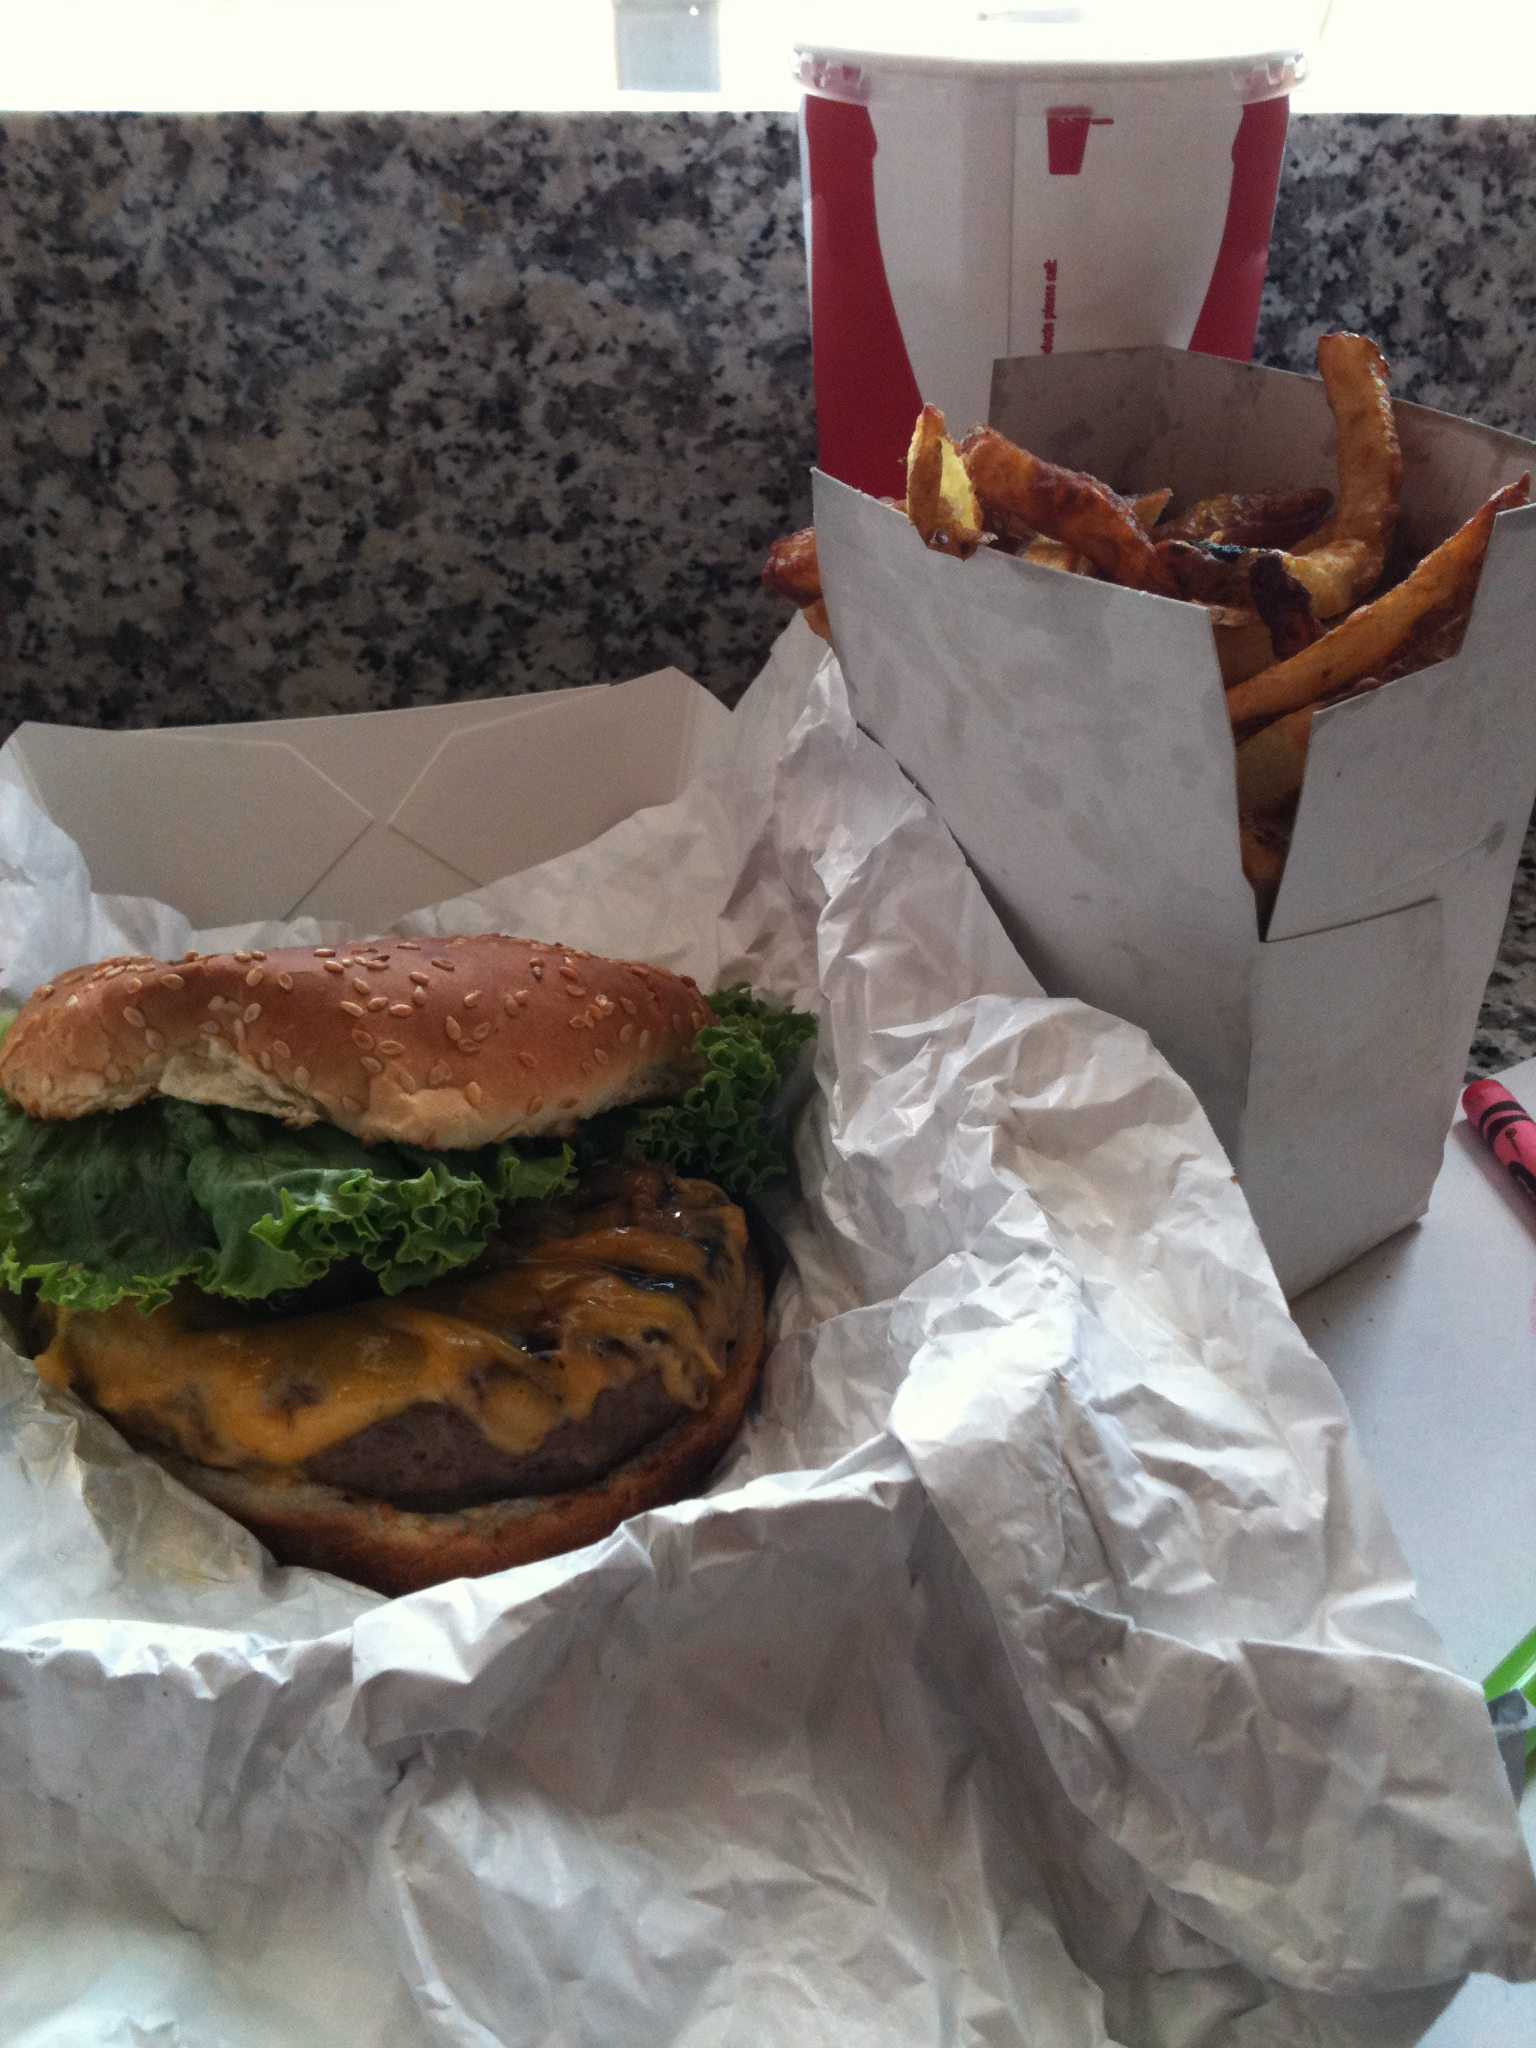 WEEKLY LUNCH PICK: Vera's burgers shack up with The Butchery in Bells Corners